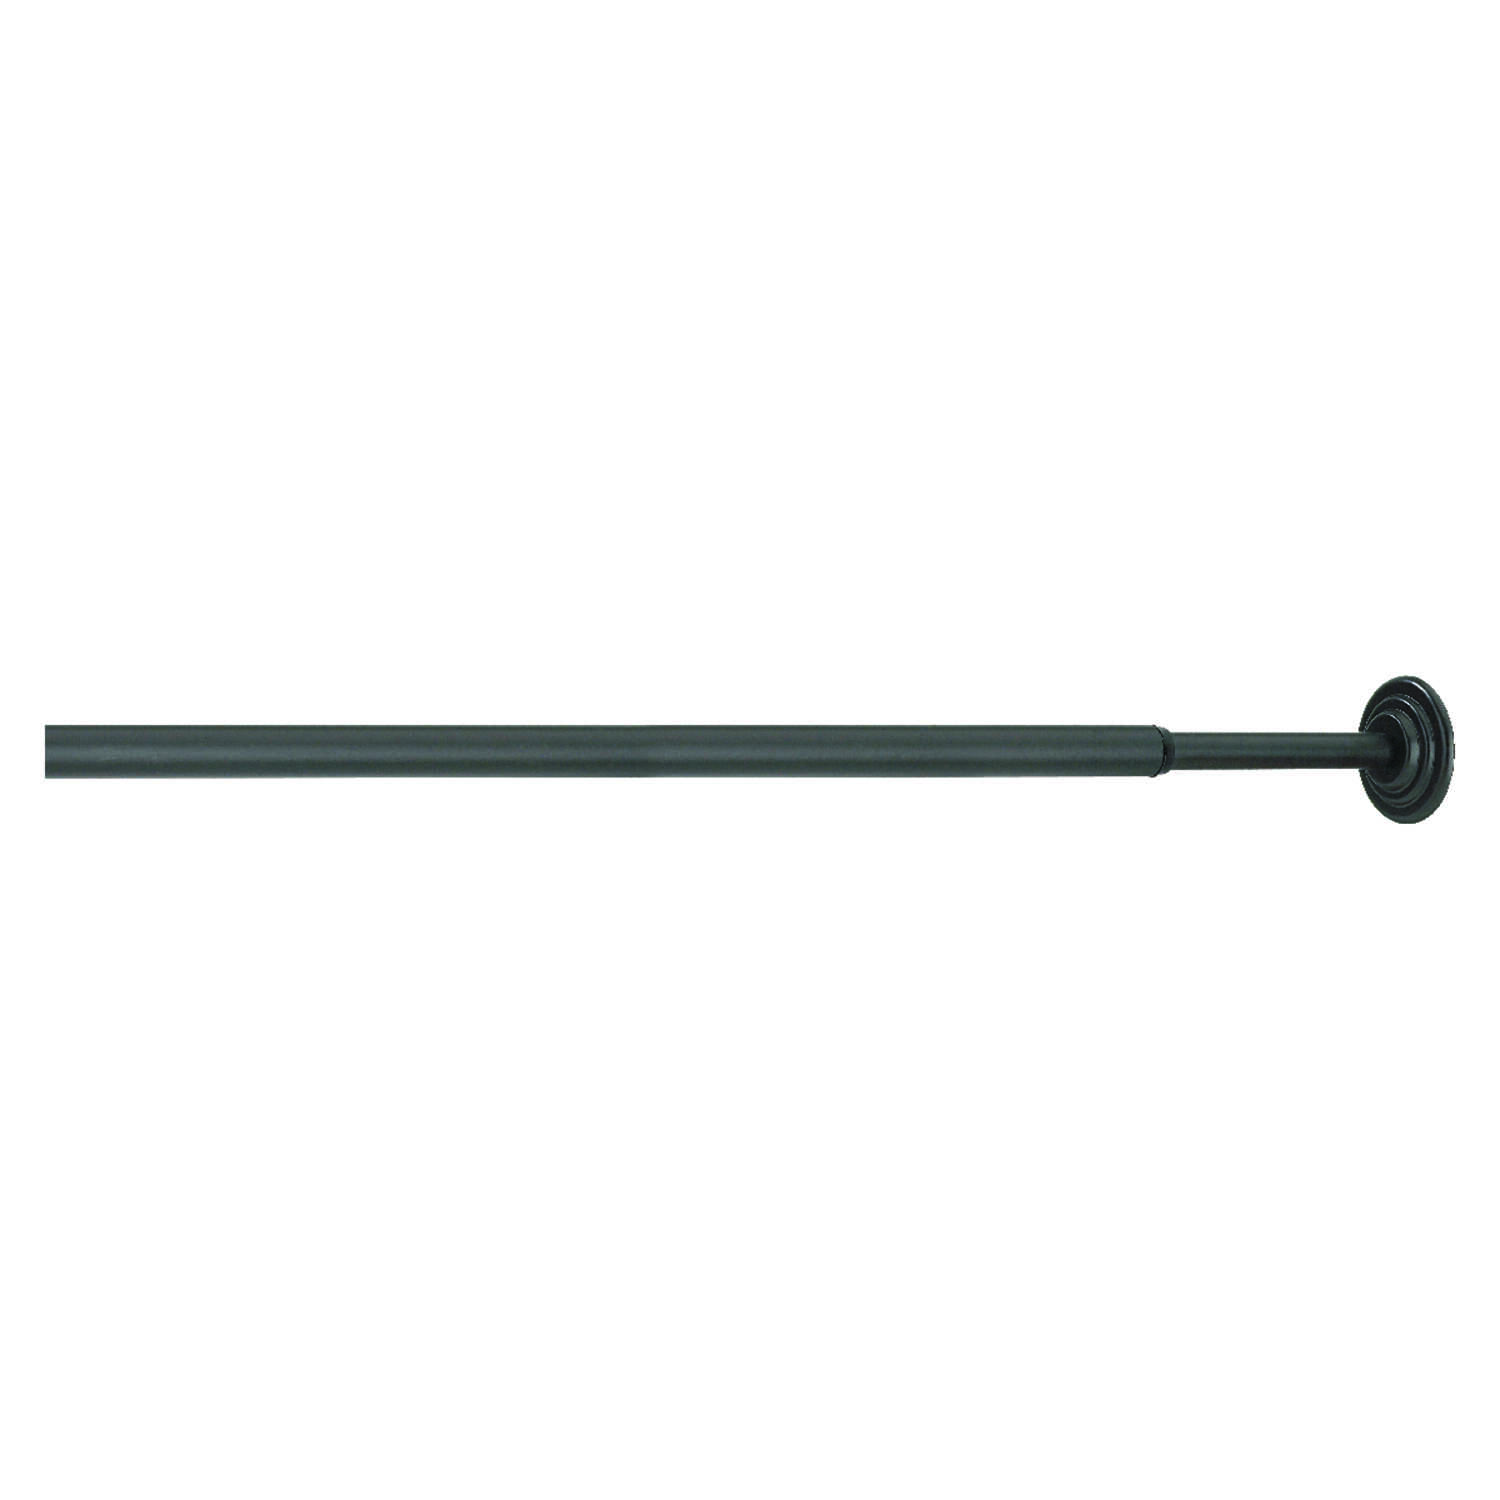 Umbra  Nickel  Black  36 in. L Tension Rod